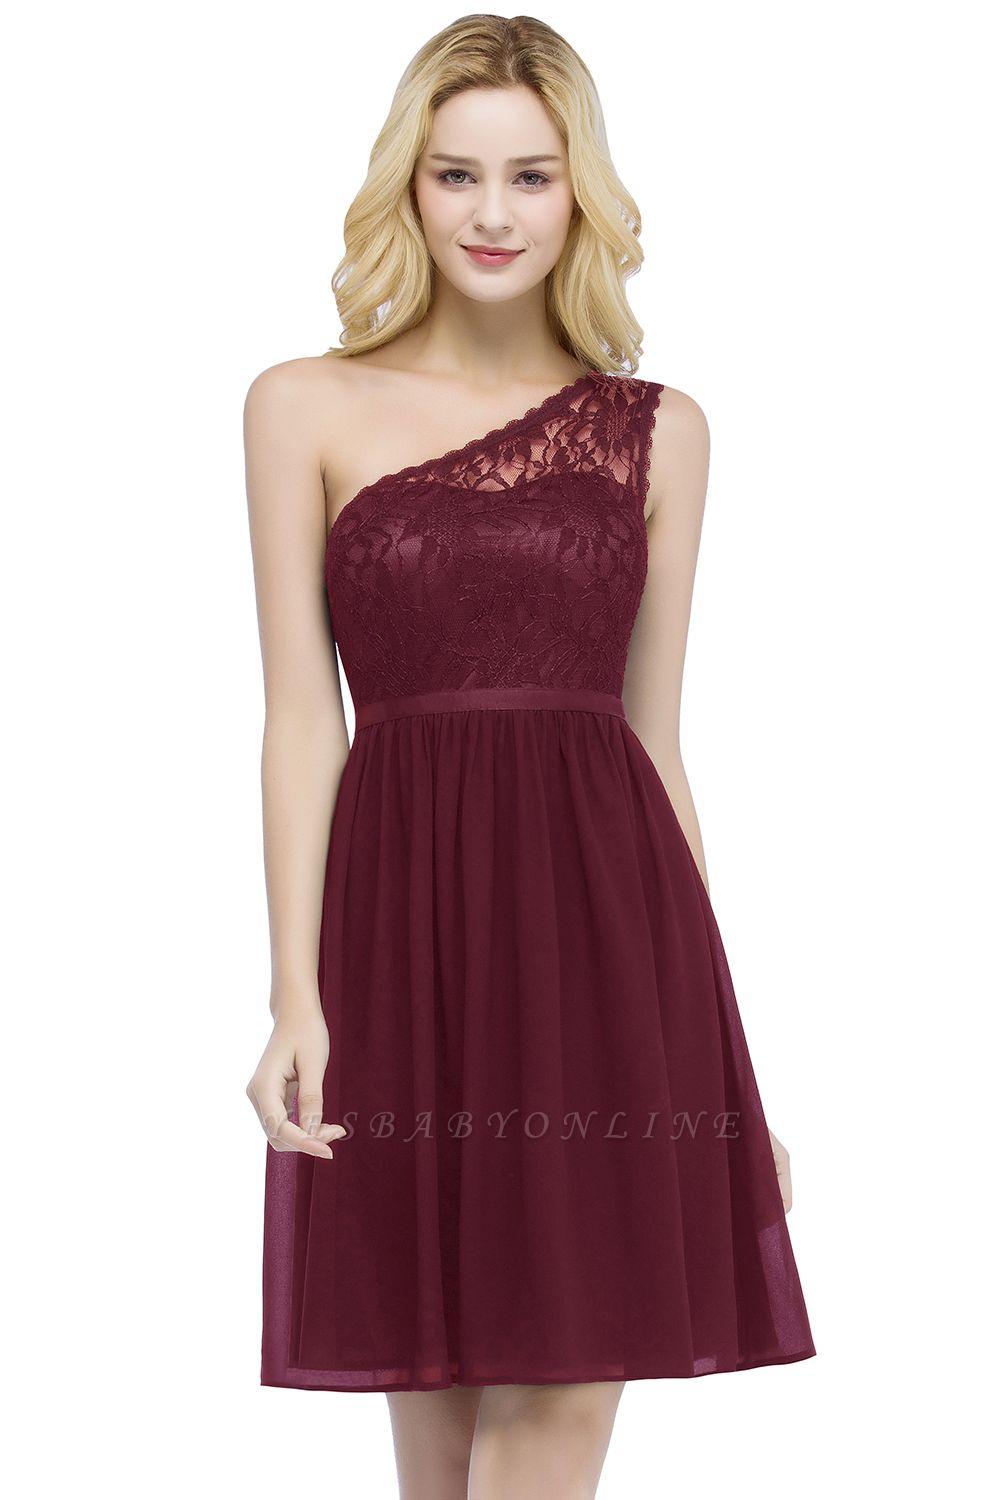 ROSA   A-line Short One-shoulder Lace Top Chiffon Homecoming Dresses with Sash